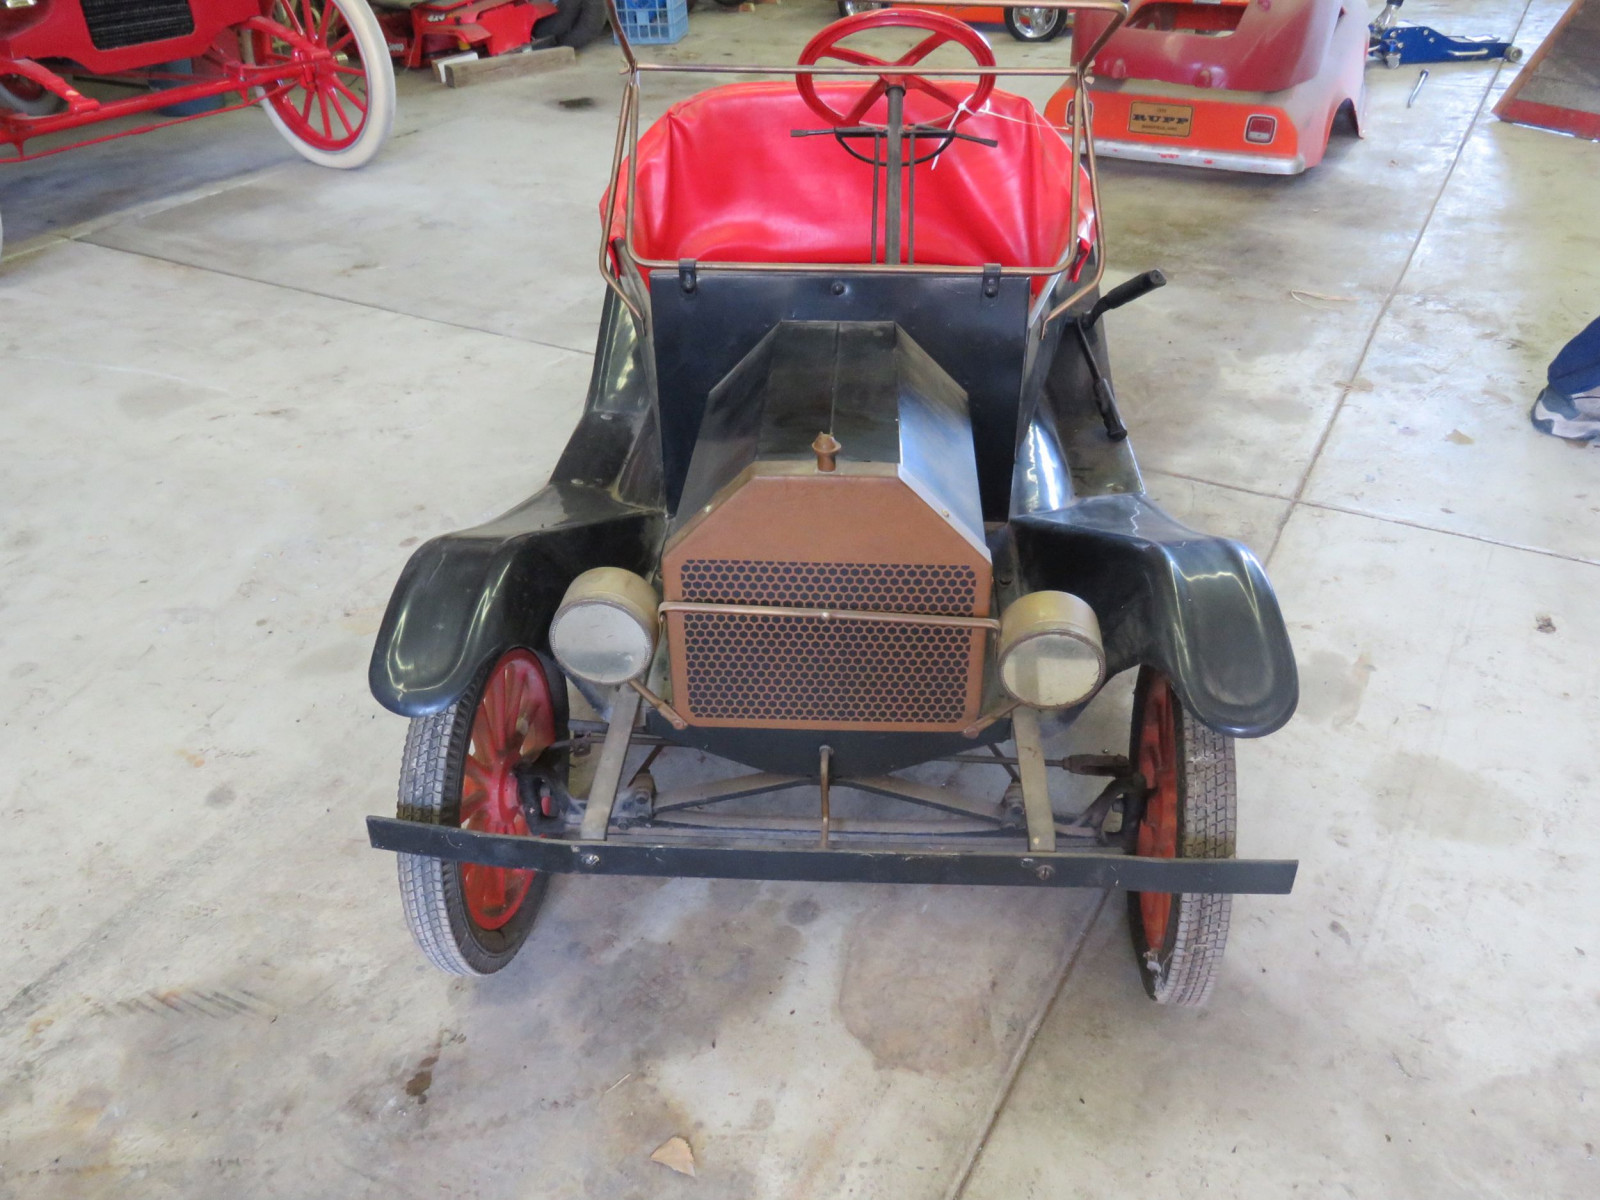 Ford Model T Touring Car Gas Powered Child's or Shriner Car - Image 2